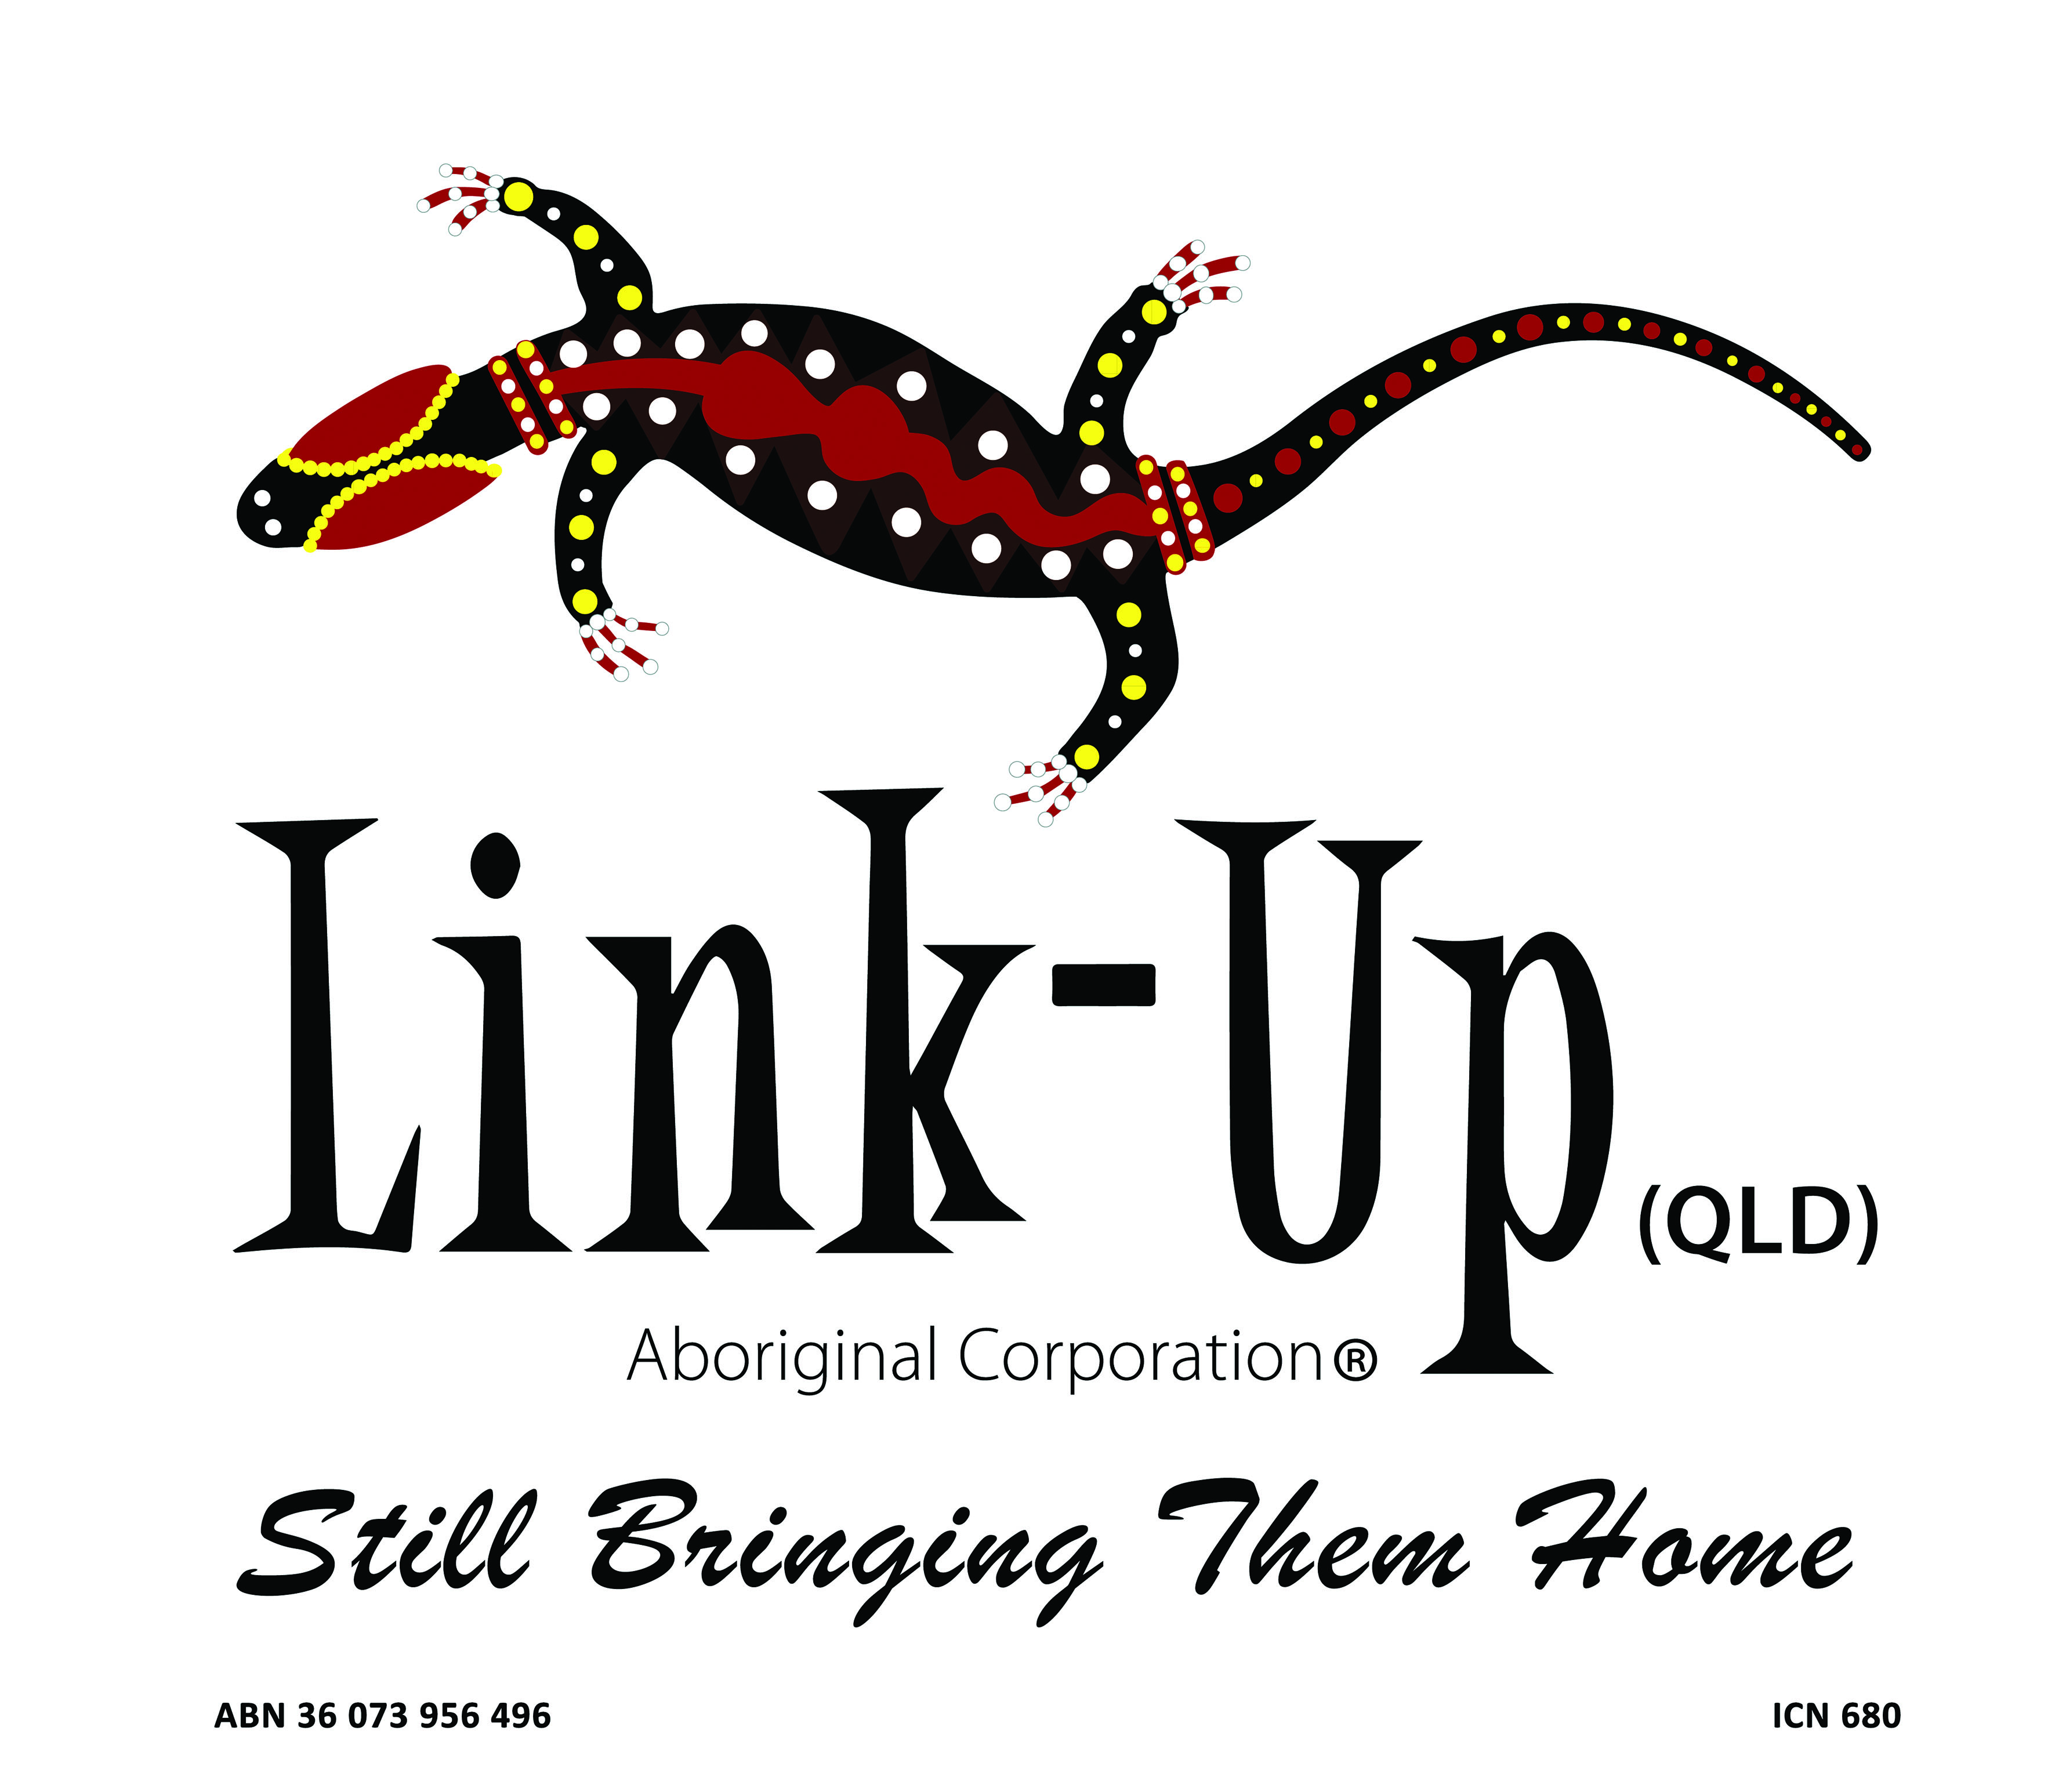 Link-Up Qld Aboriginal Corporation